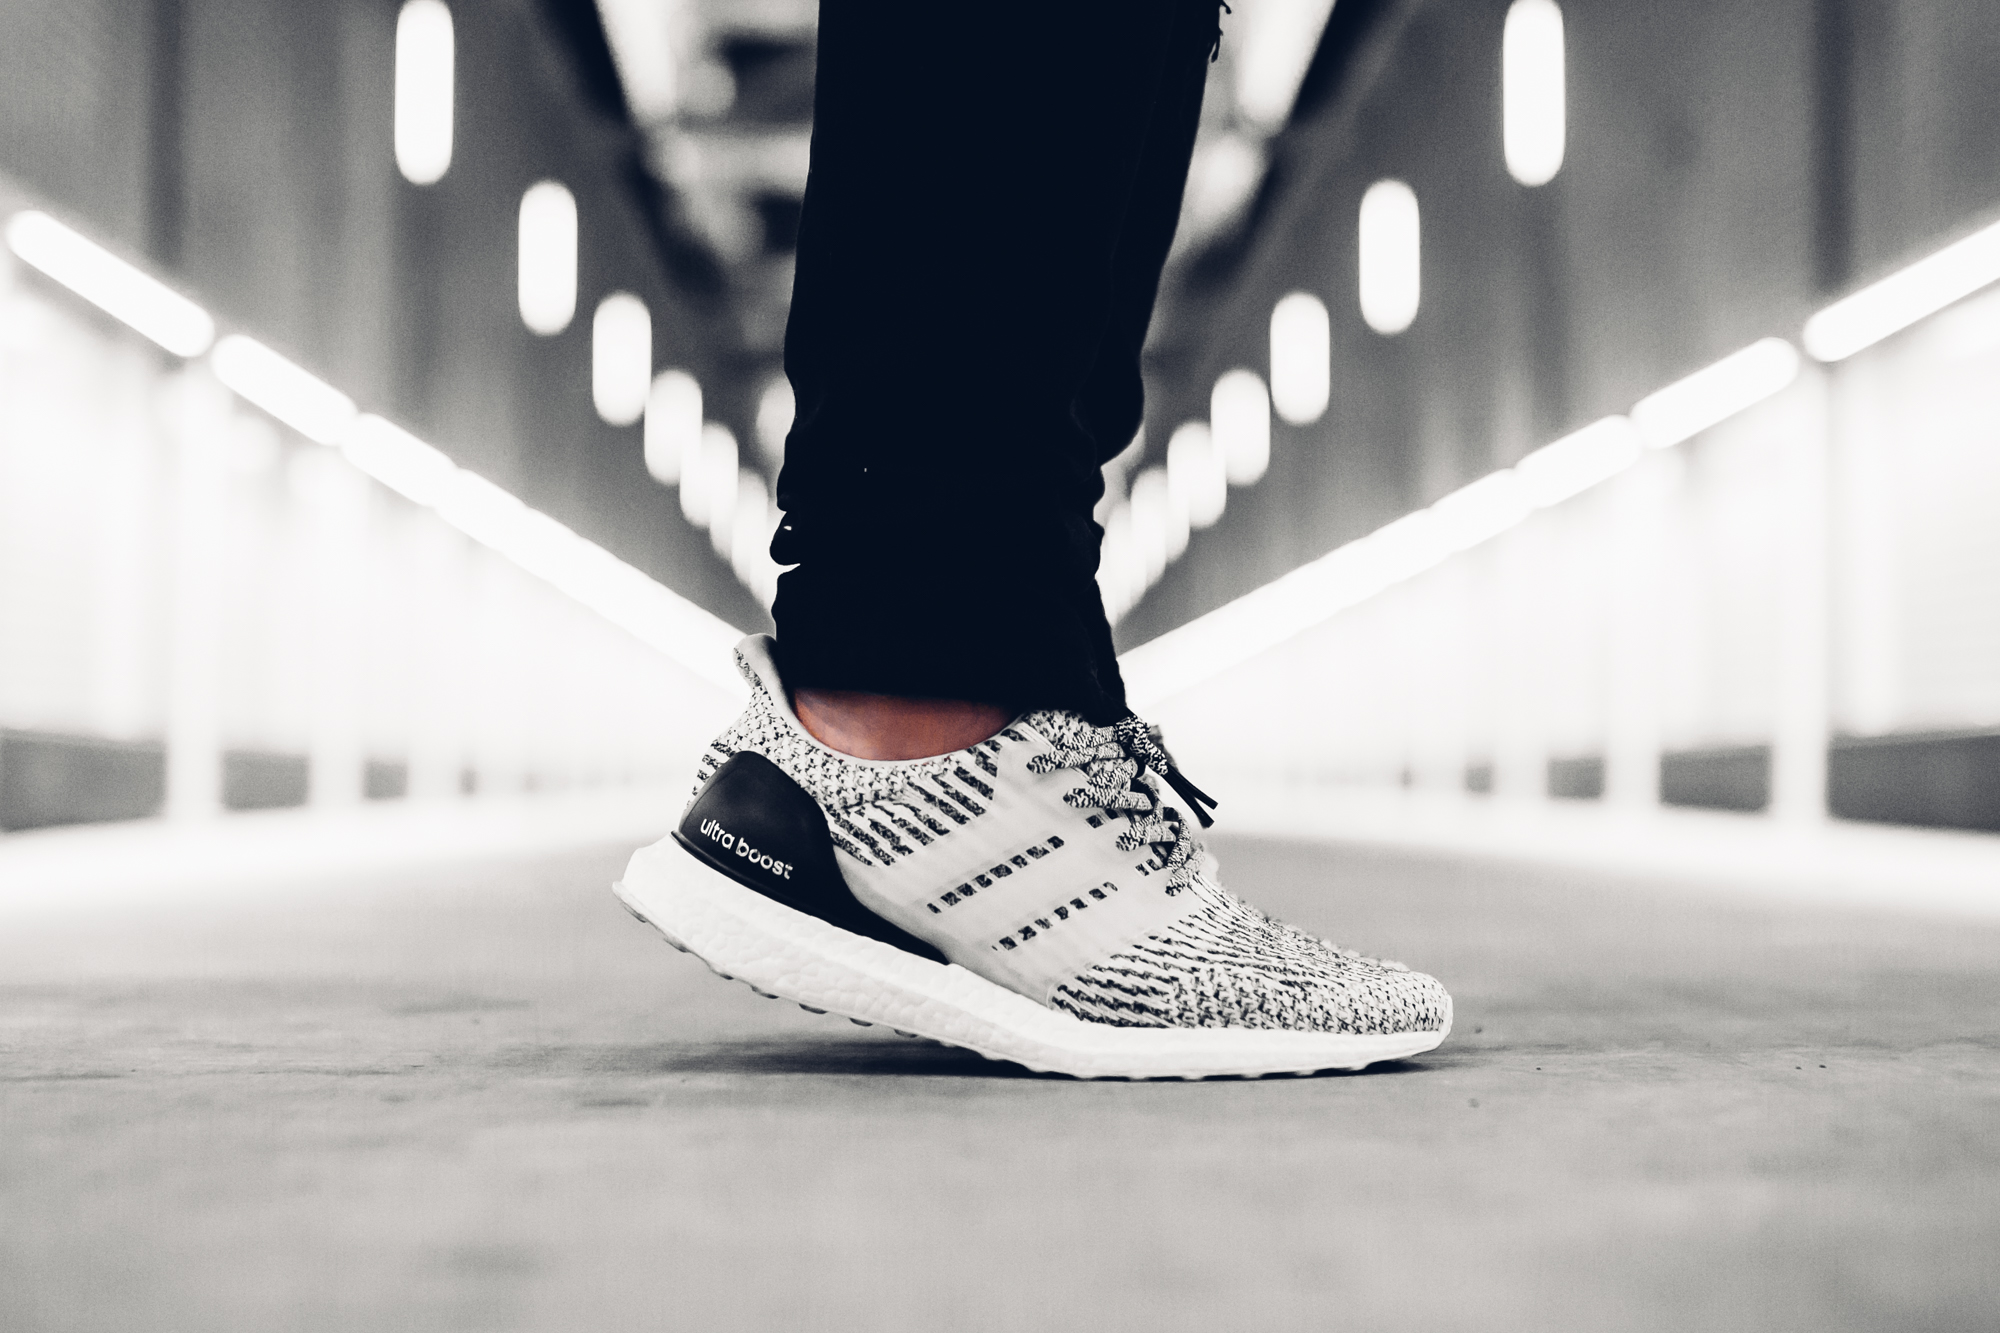 860711c5815 Adidas Ultra boost 3.0 Oreo Size 9 - Low-Top Sneakers for Sale - Grailed